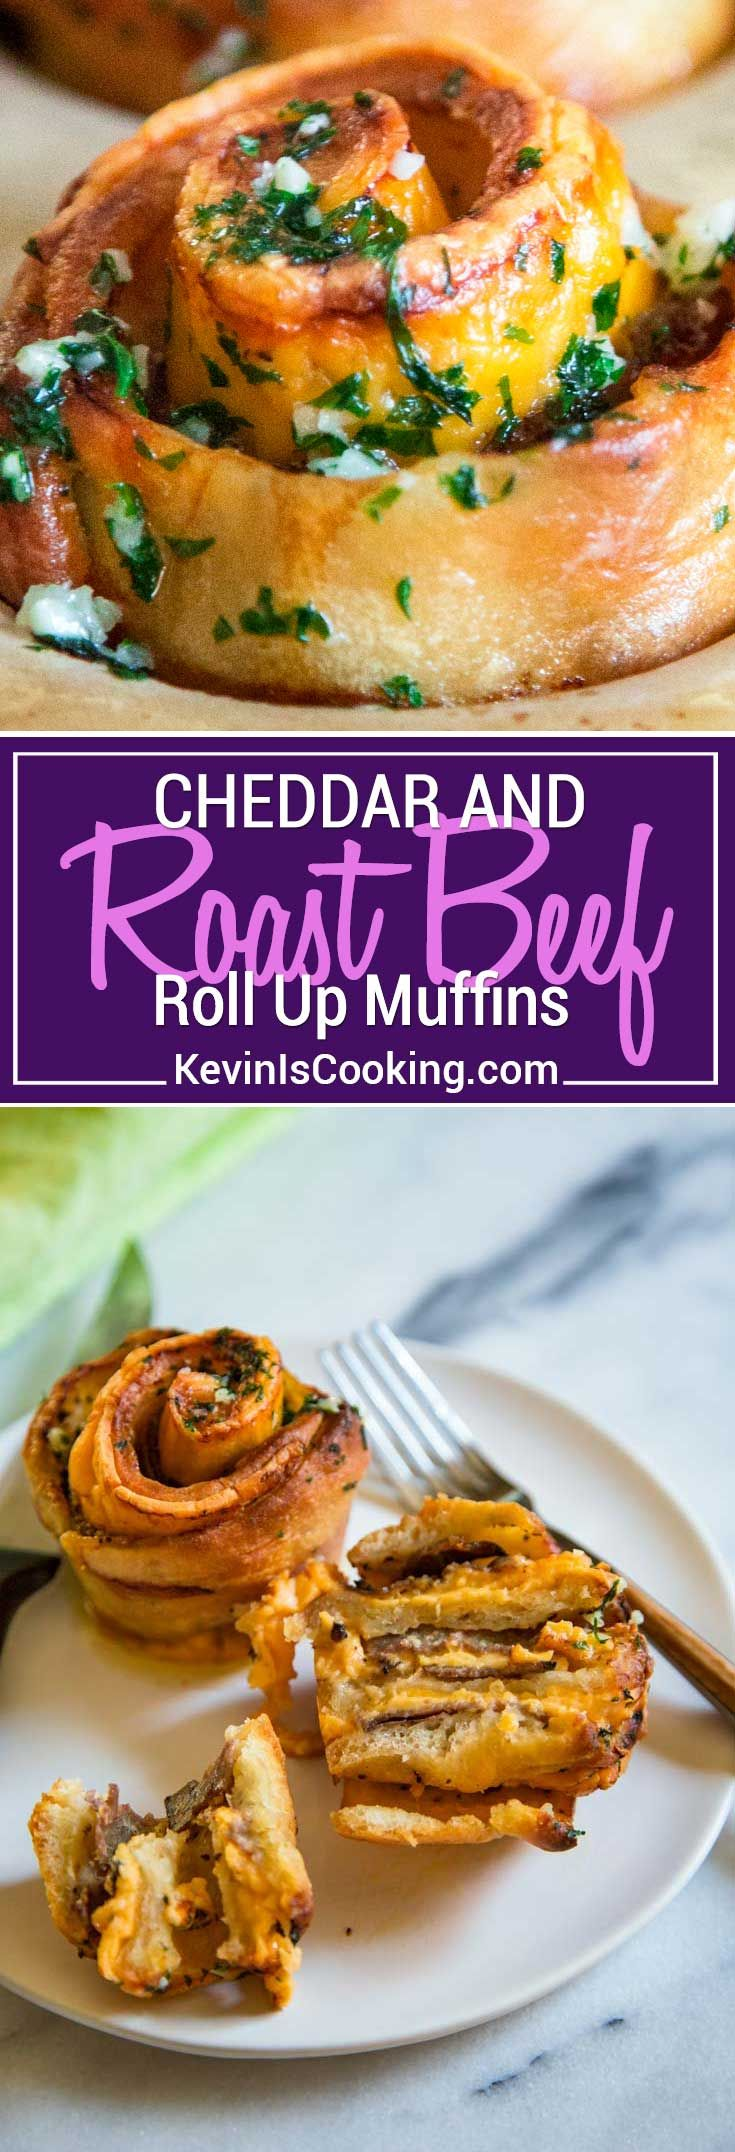 2017 05 potluck ideas for small groups - My Baked Roast Beef Cheddar Muffins Start With Pizza Dough Smothered In Dijon Horseradish Cream